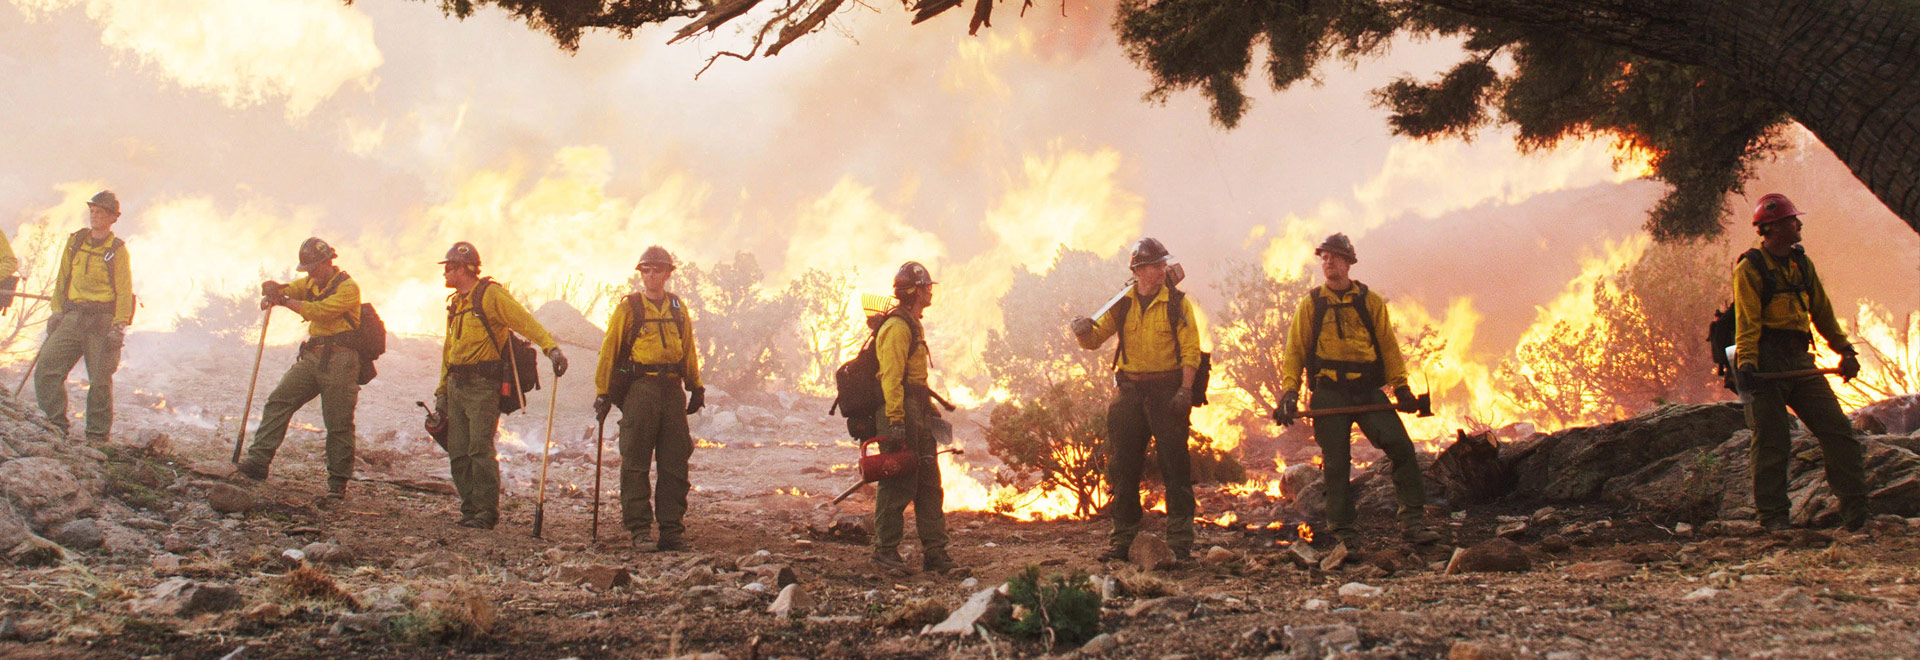 Only The Brave - True story of tragedy handled with respect and authenticity